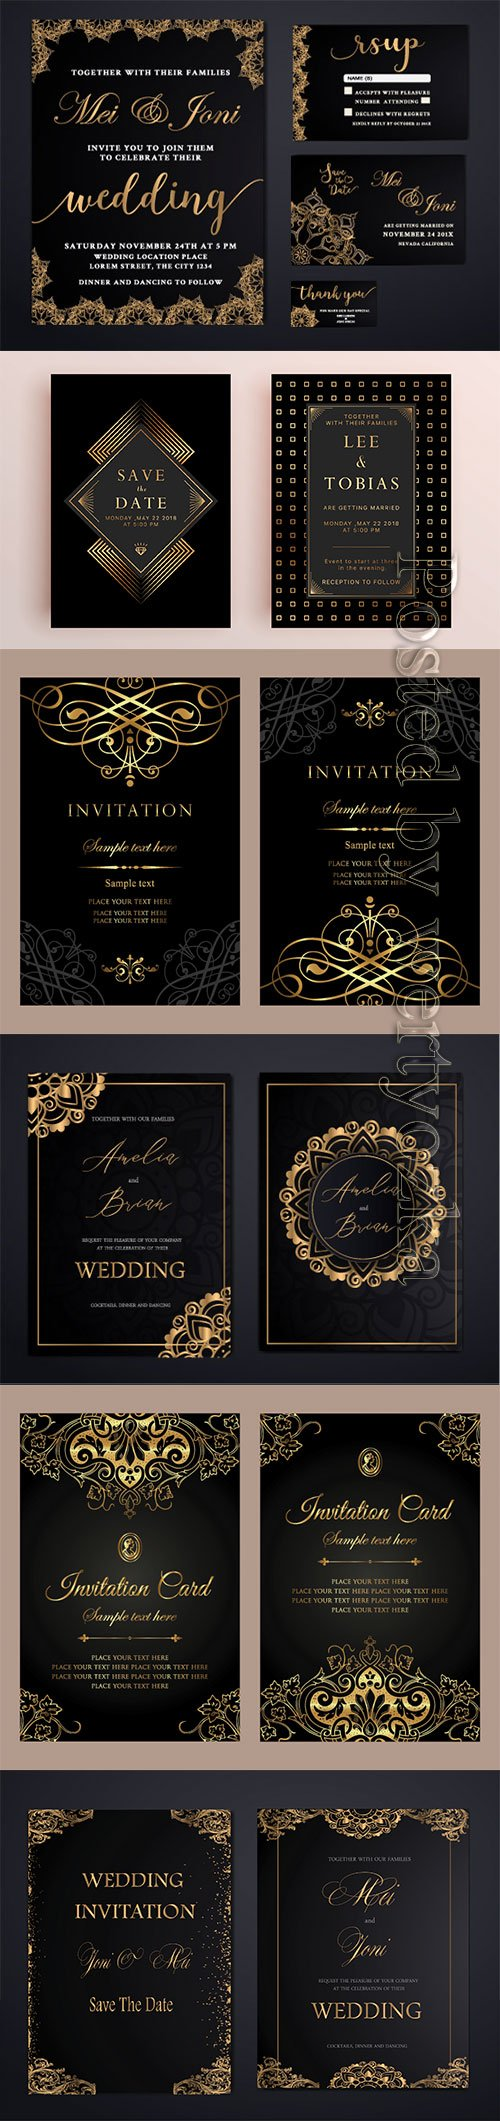 Invitation card luxury gold template design in vintage style